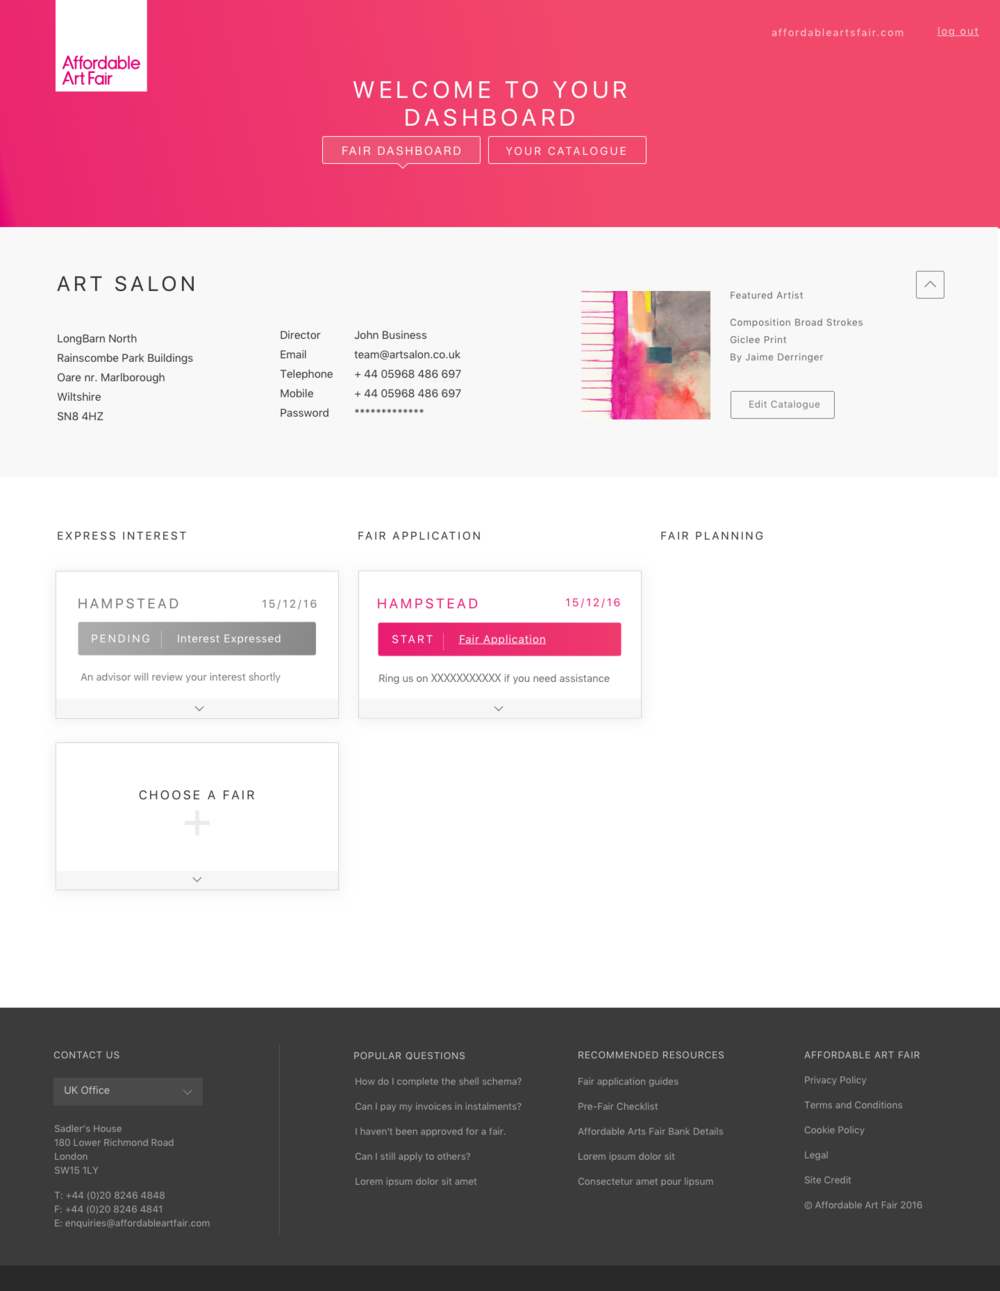 Wireframes for the user portal